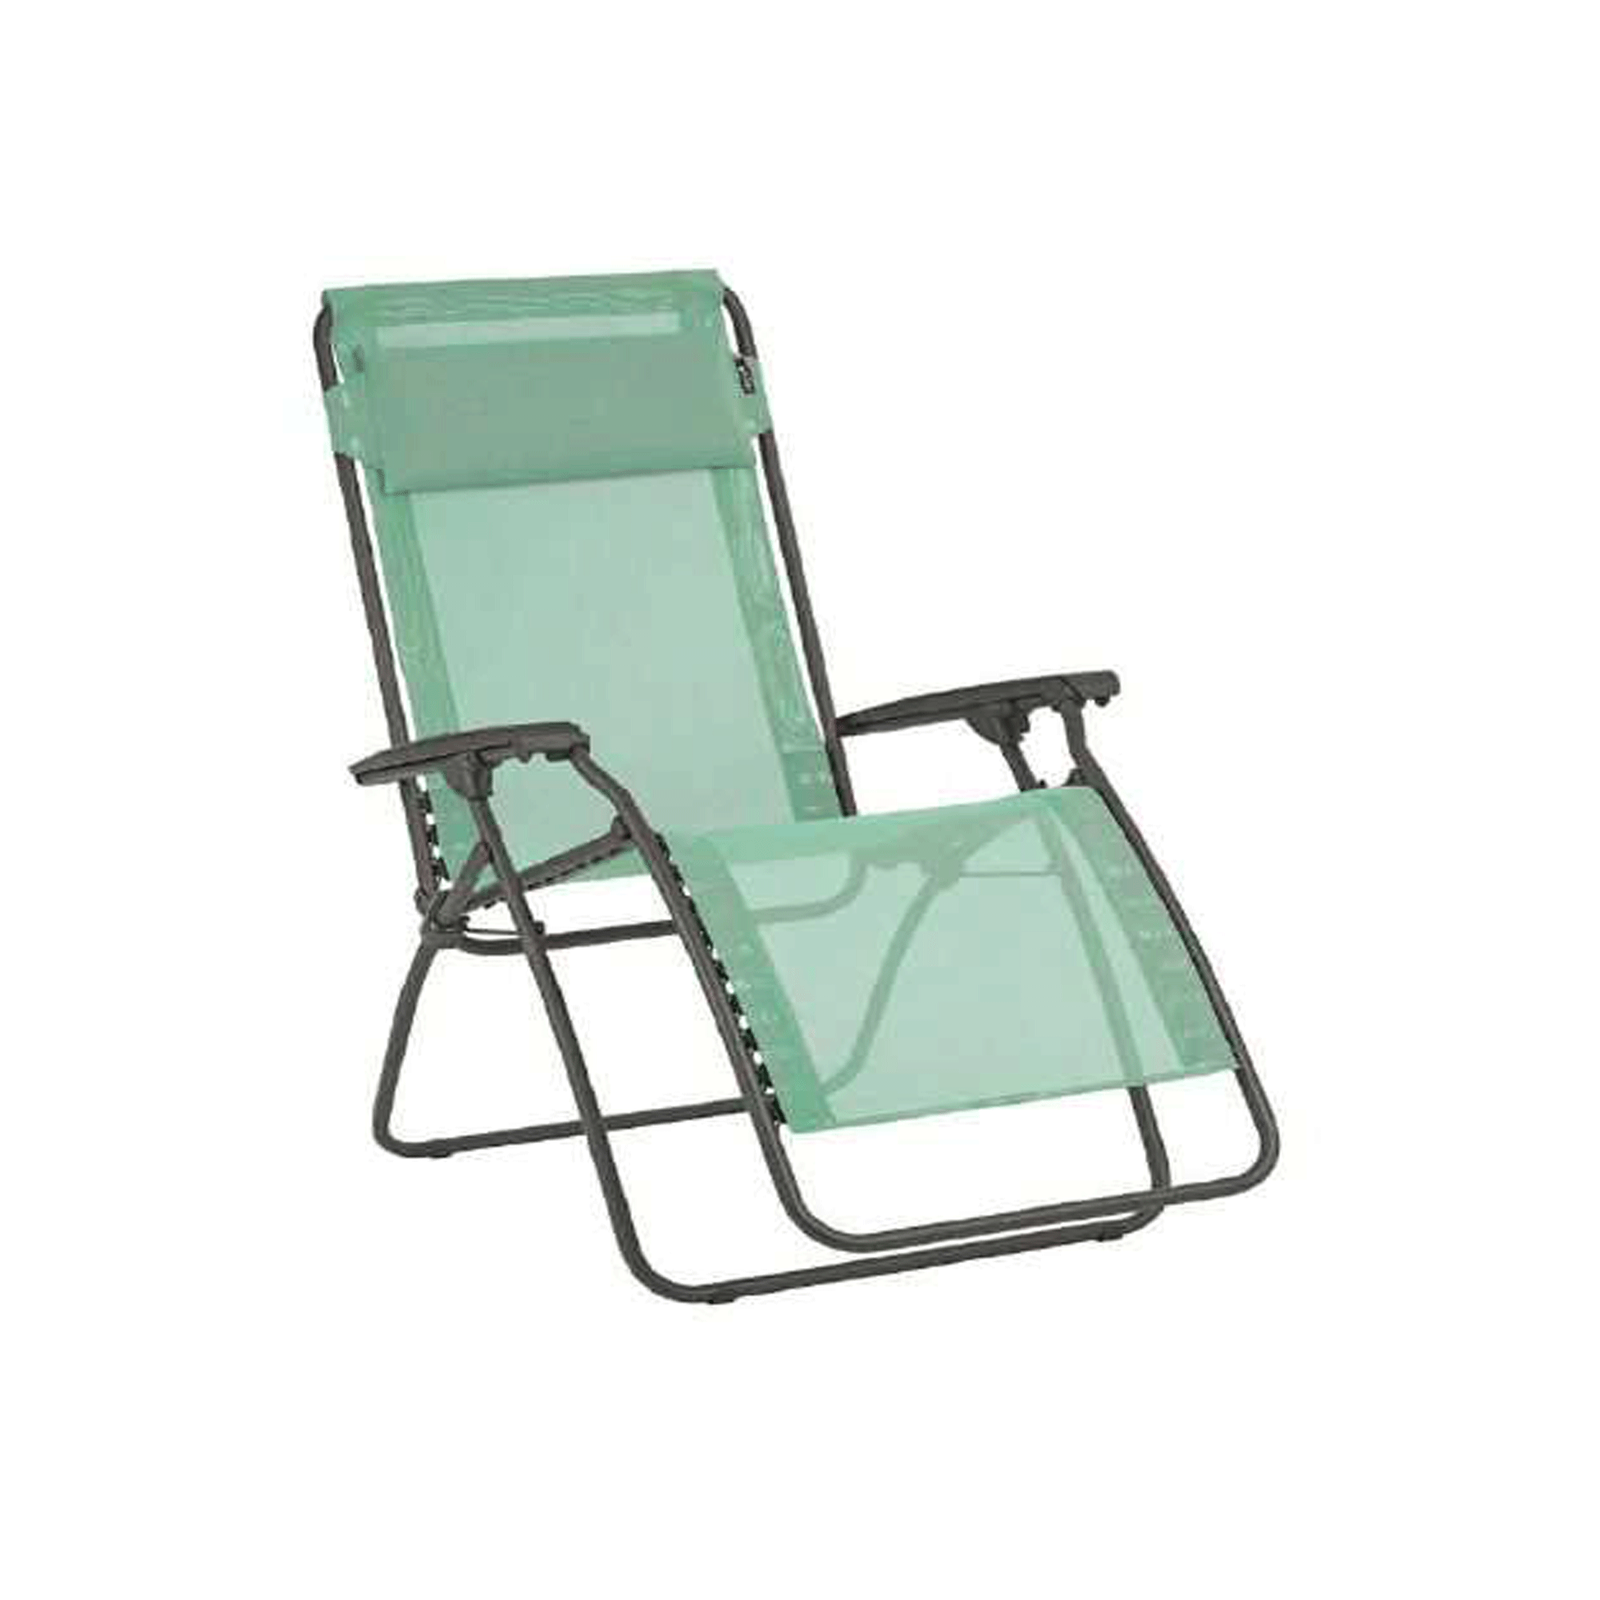 Lafuma R Clip Zero Gravity Compact Sling Outdoor Recliner Lounge Chair, Menthol